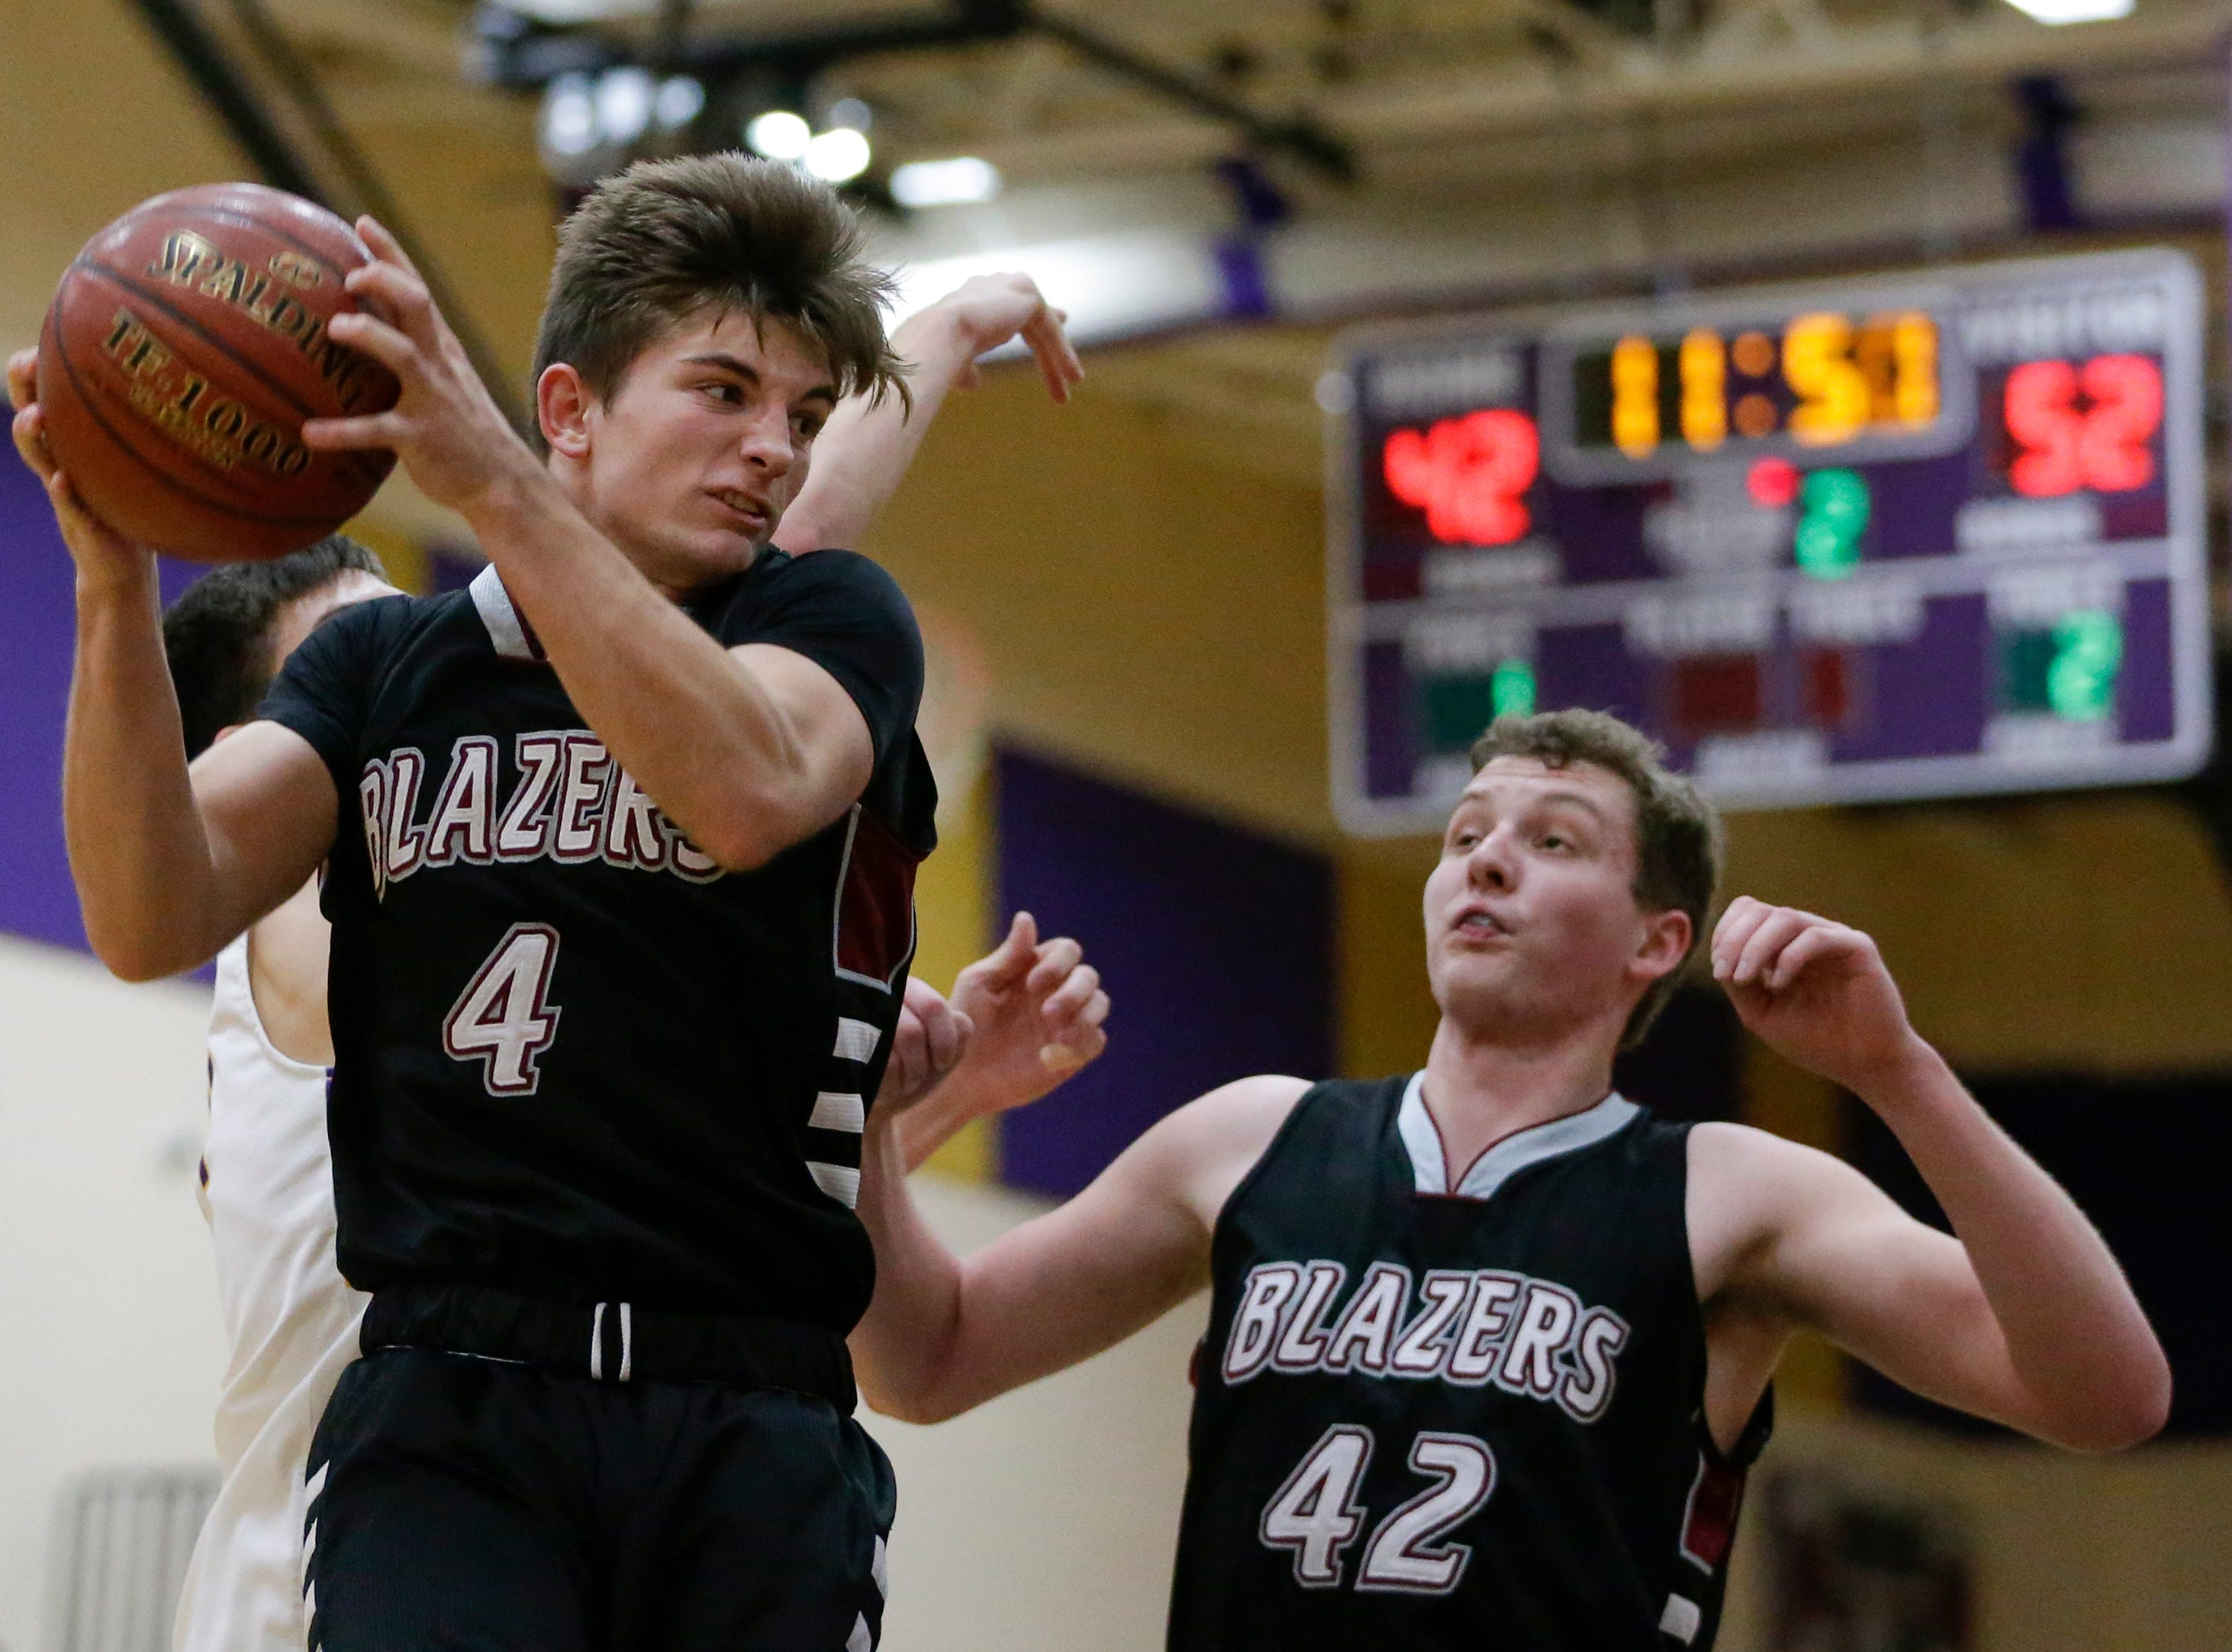 Green Bay NEW Lutheran's Zach Luepke (4) grabs a rebound against Two Rivers at Two Rivers High School Tuesday, January 8, 2019, in Two Rivers, Wis. Joshua Clark/USA TODAY NETWORK-Wisconsin